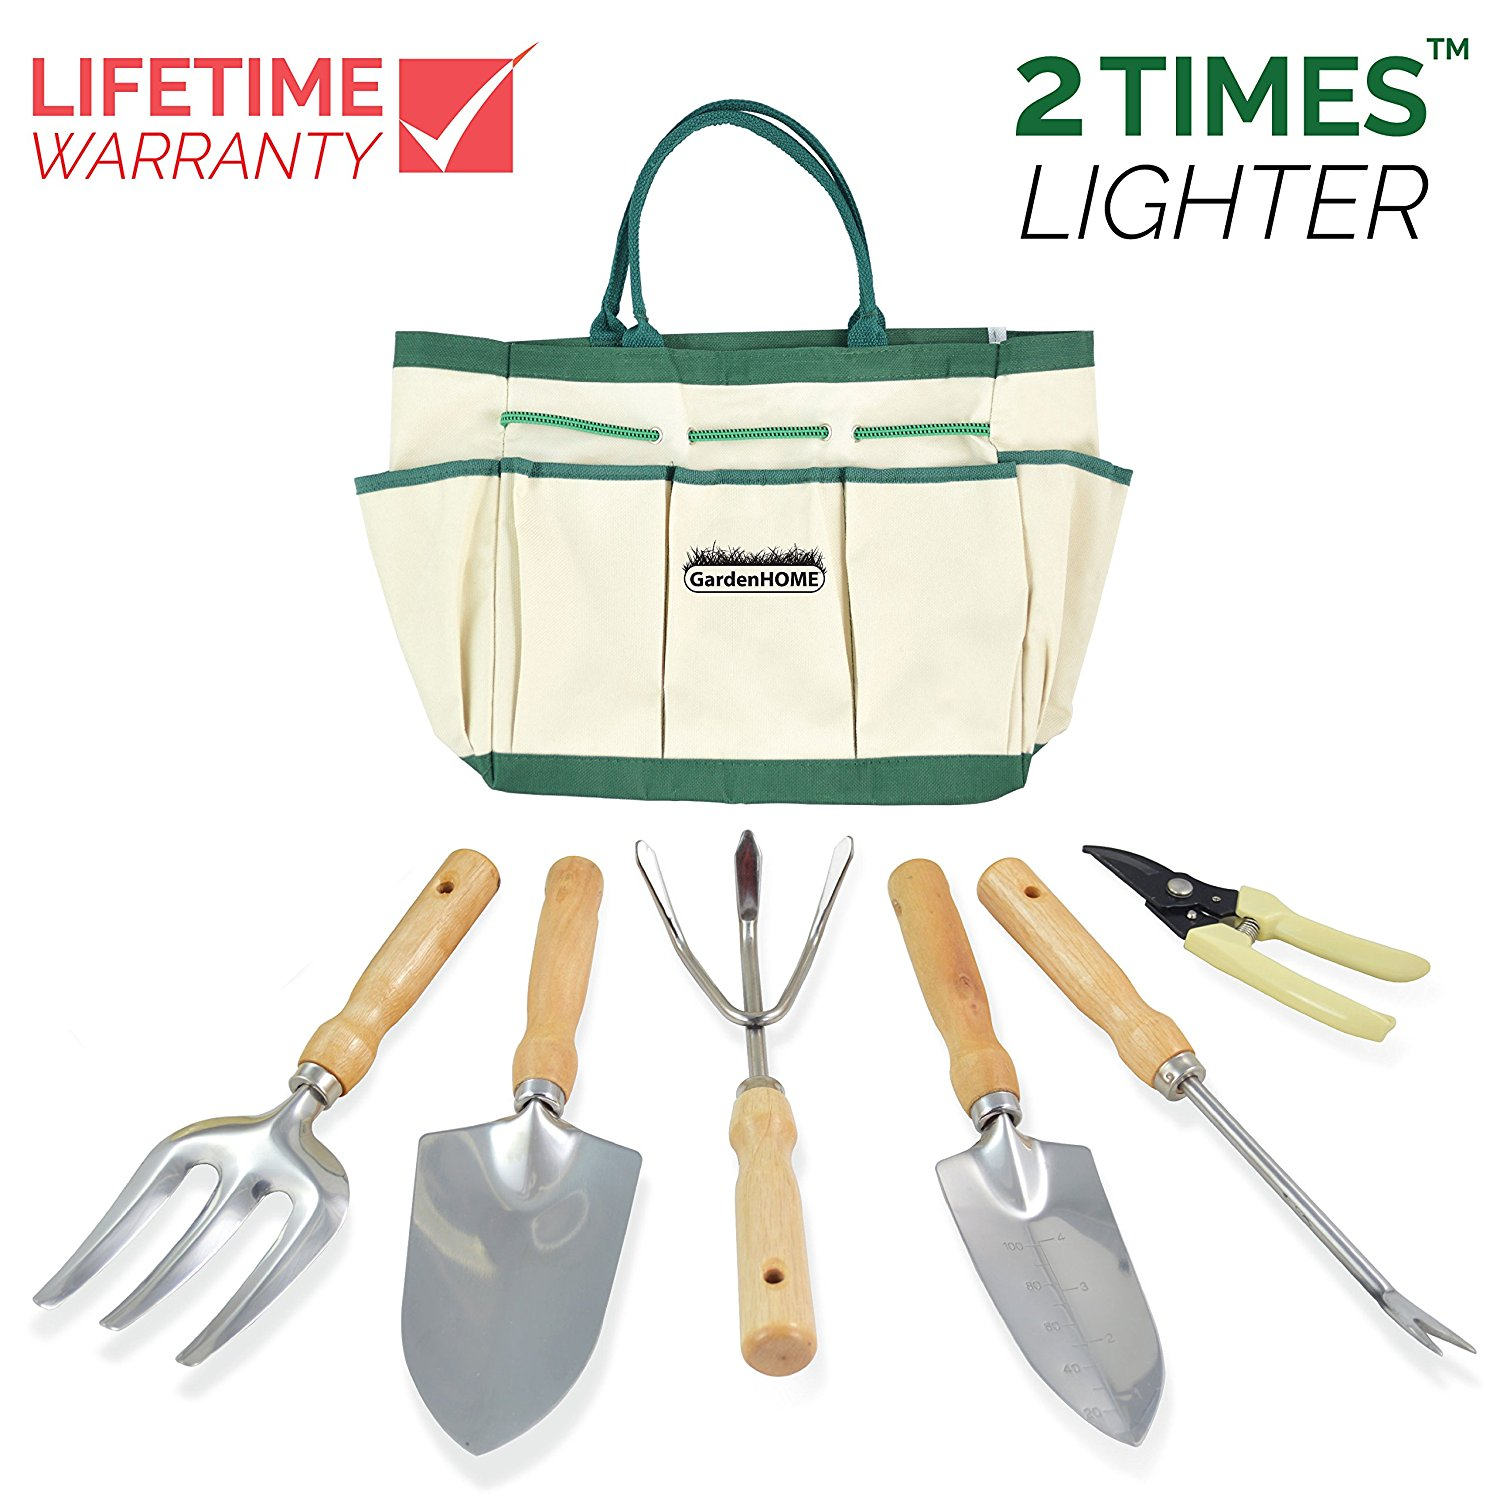 Garden Tool Set with Gardening Tote Bag and 6 Tools(Garden Tool and Tote Set) by GardenHOME